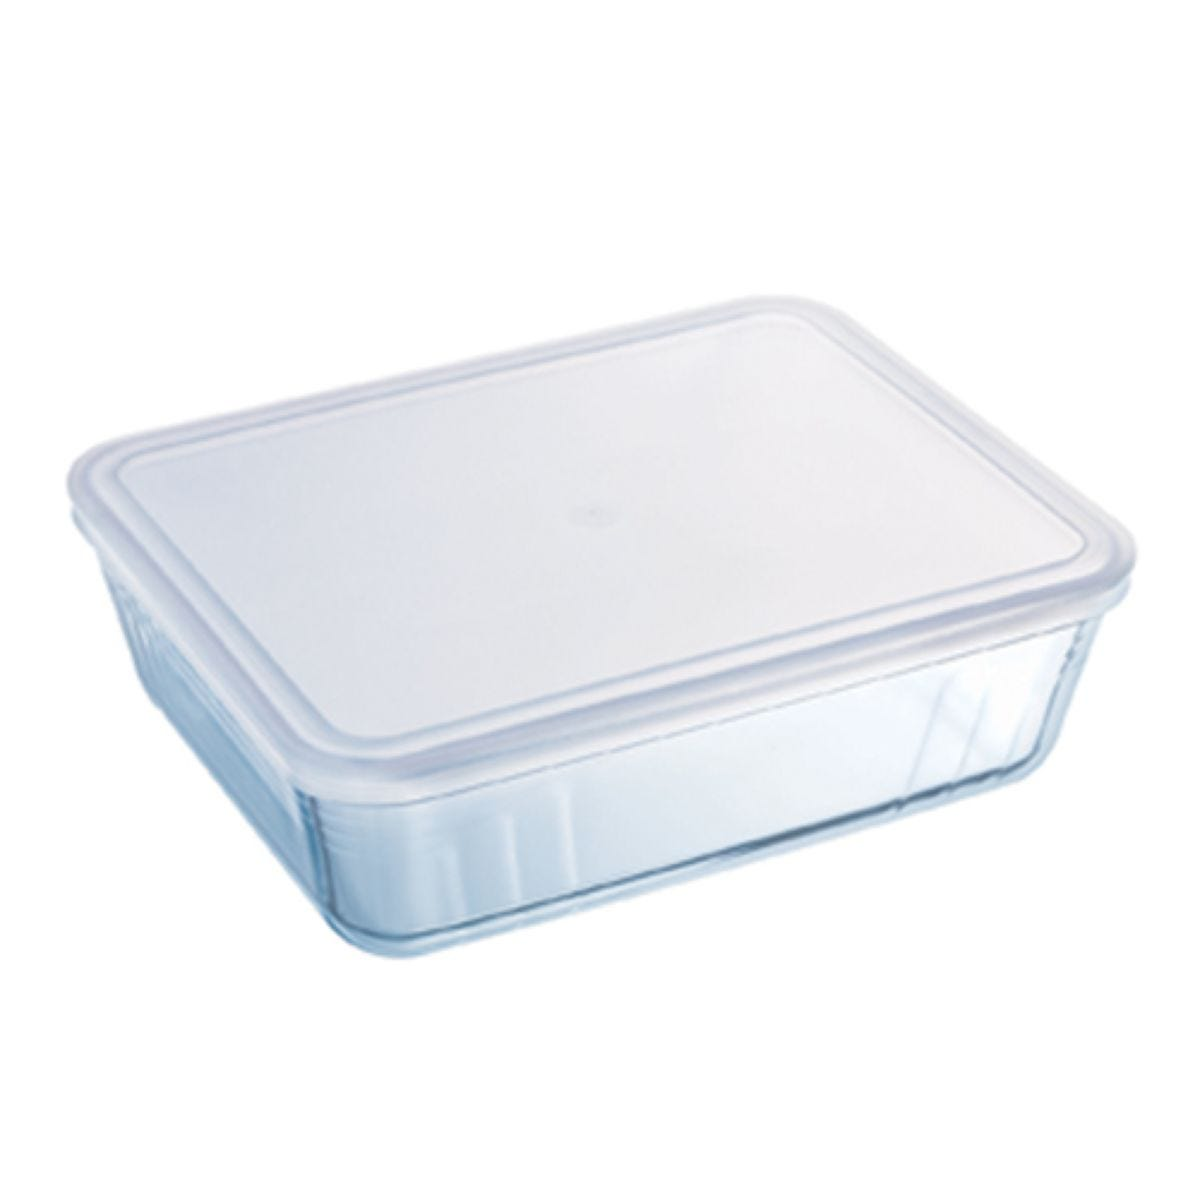 Pyrex Glass Dish with Plastic Lid - 2.6L